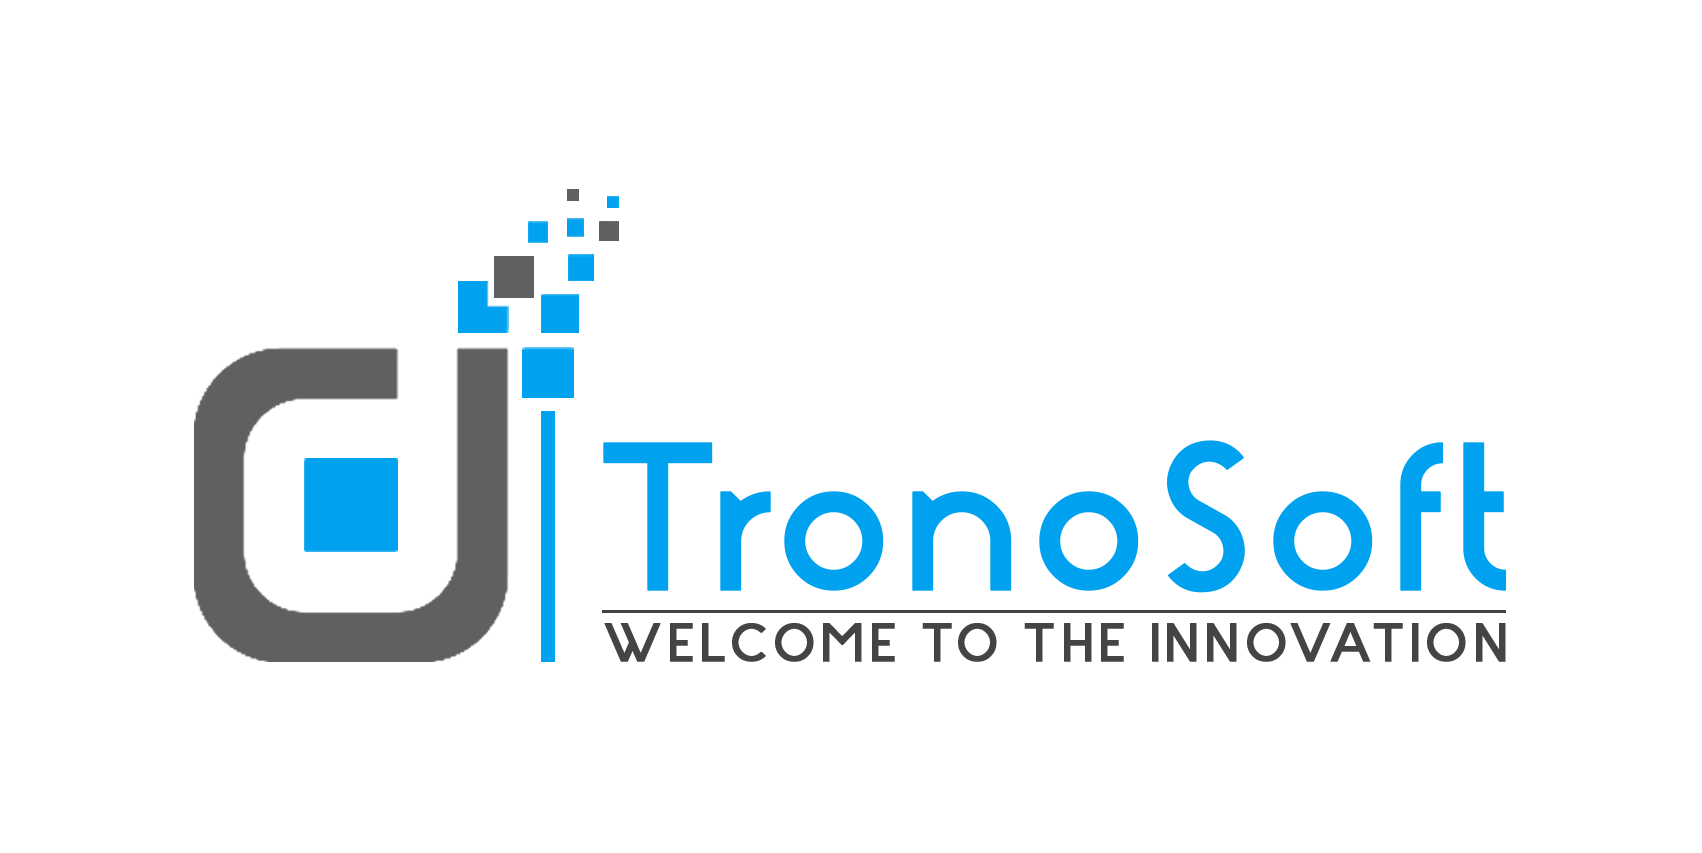 Tronosoft Technology Pvt. Ltd